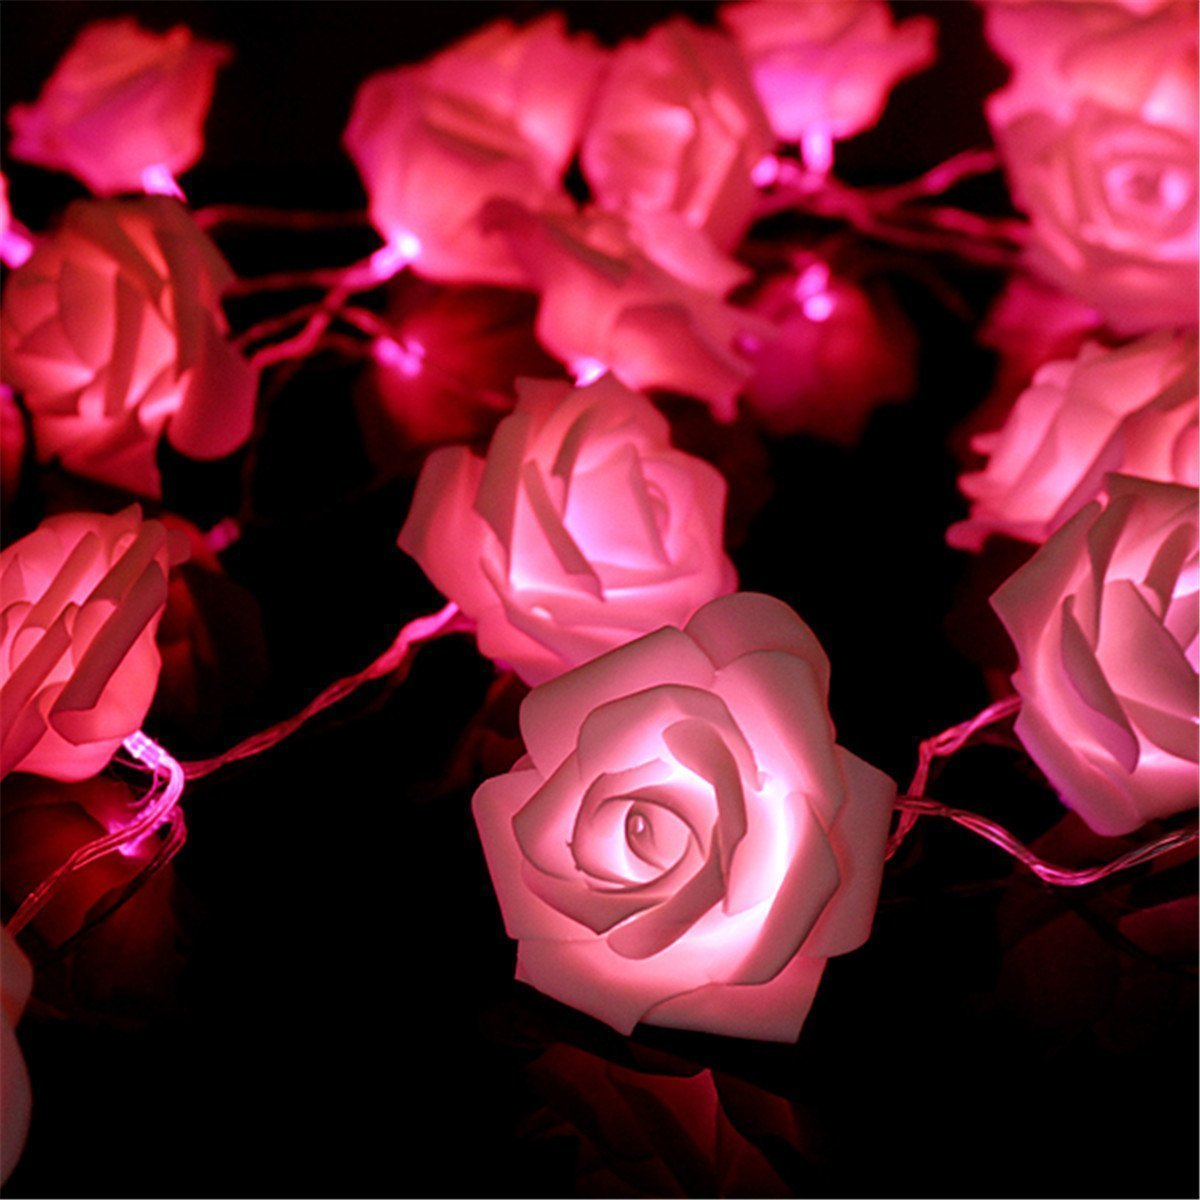 amazoncom kingso 20 led battery operated rose flower string lights wedding garden christmas decor pink home improvement - Valentine String Lights